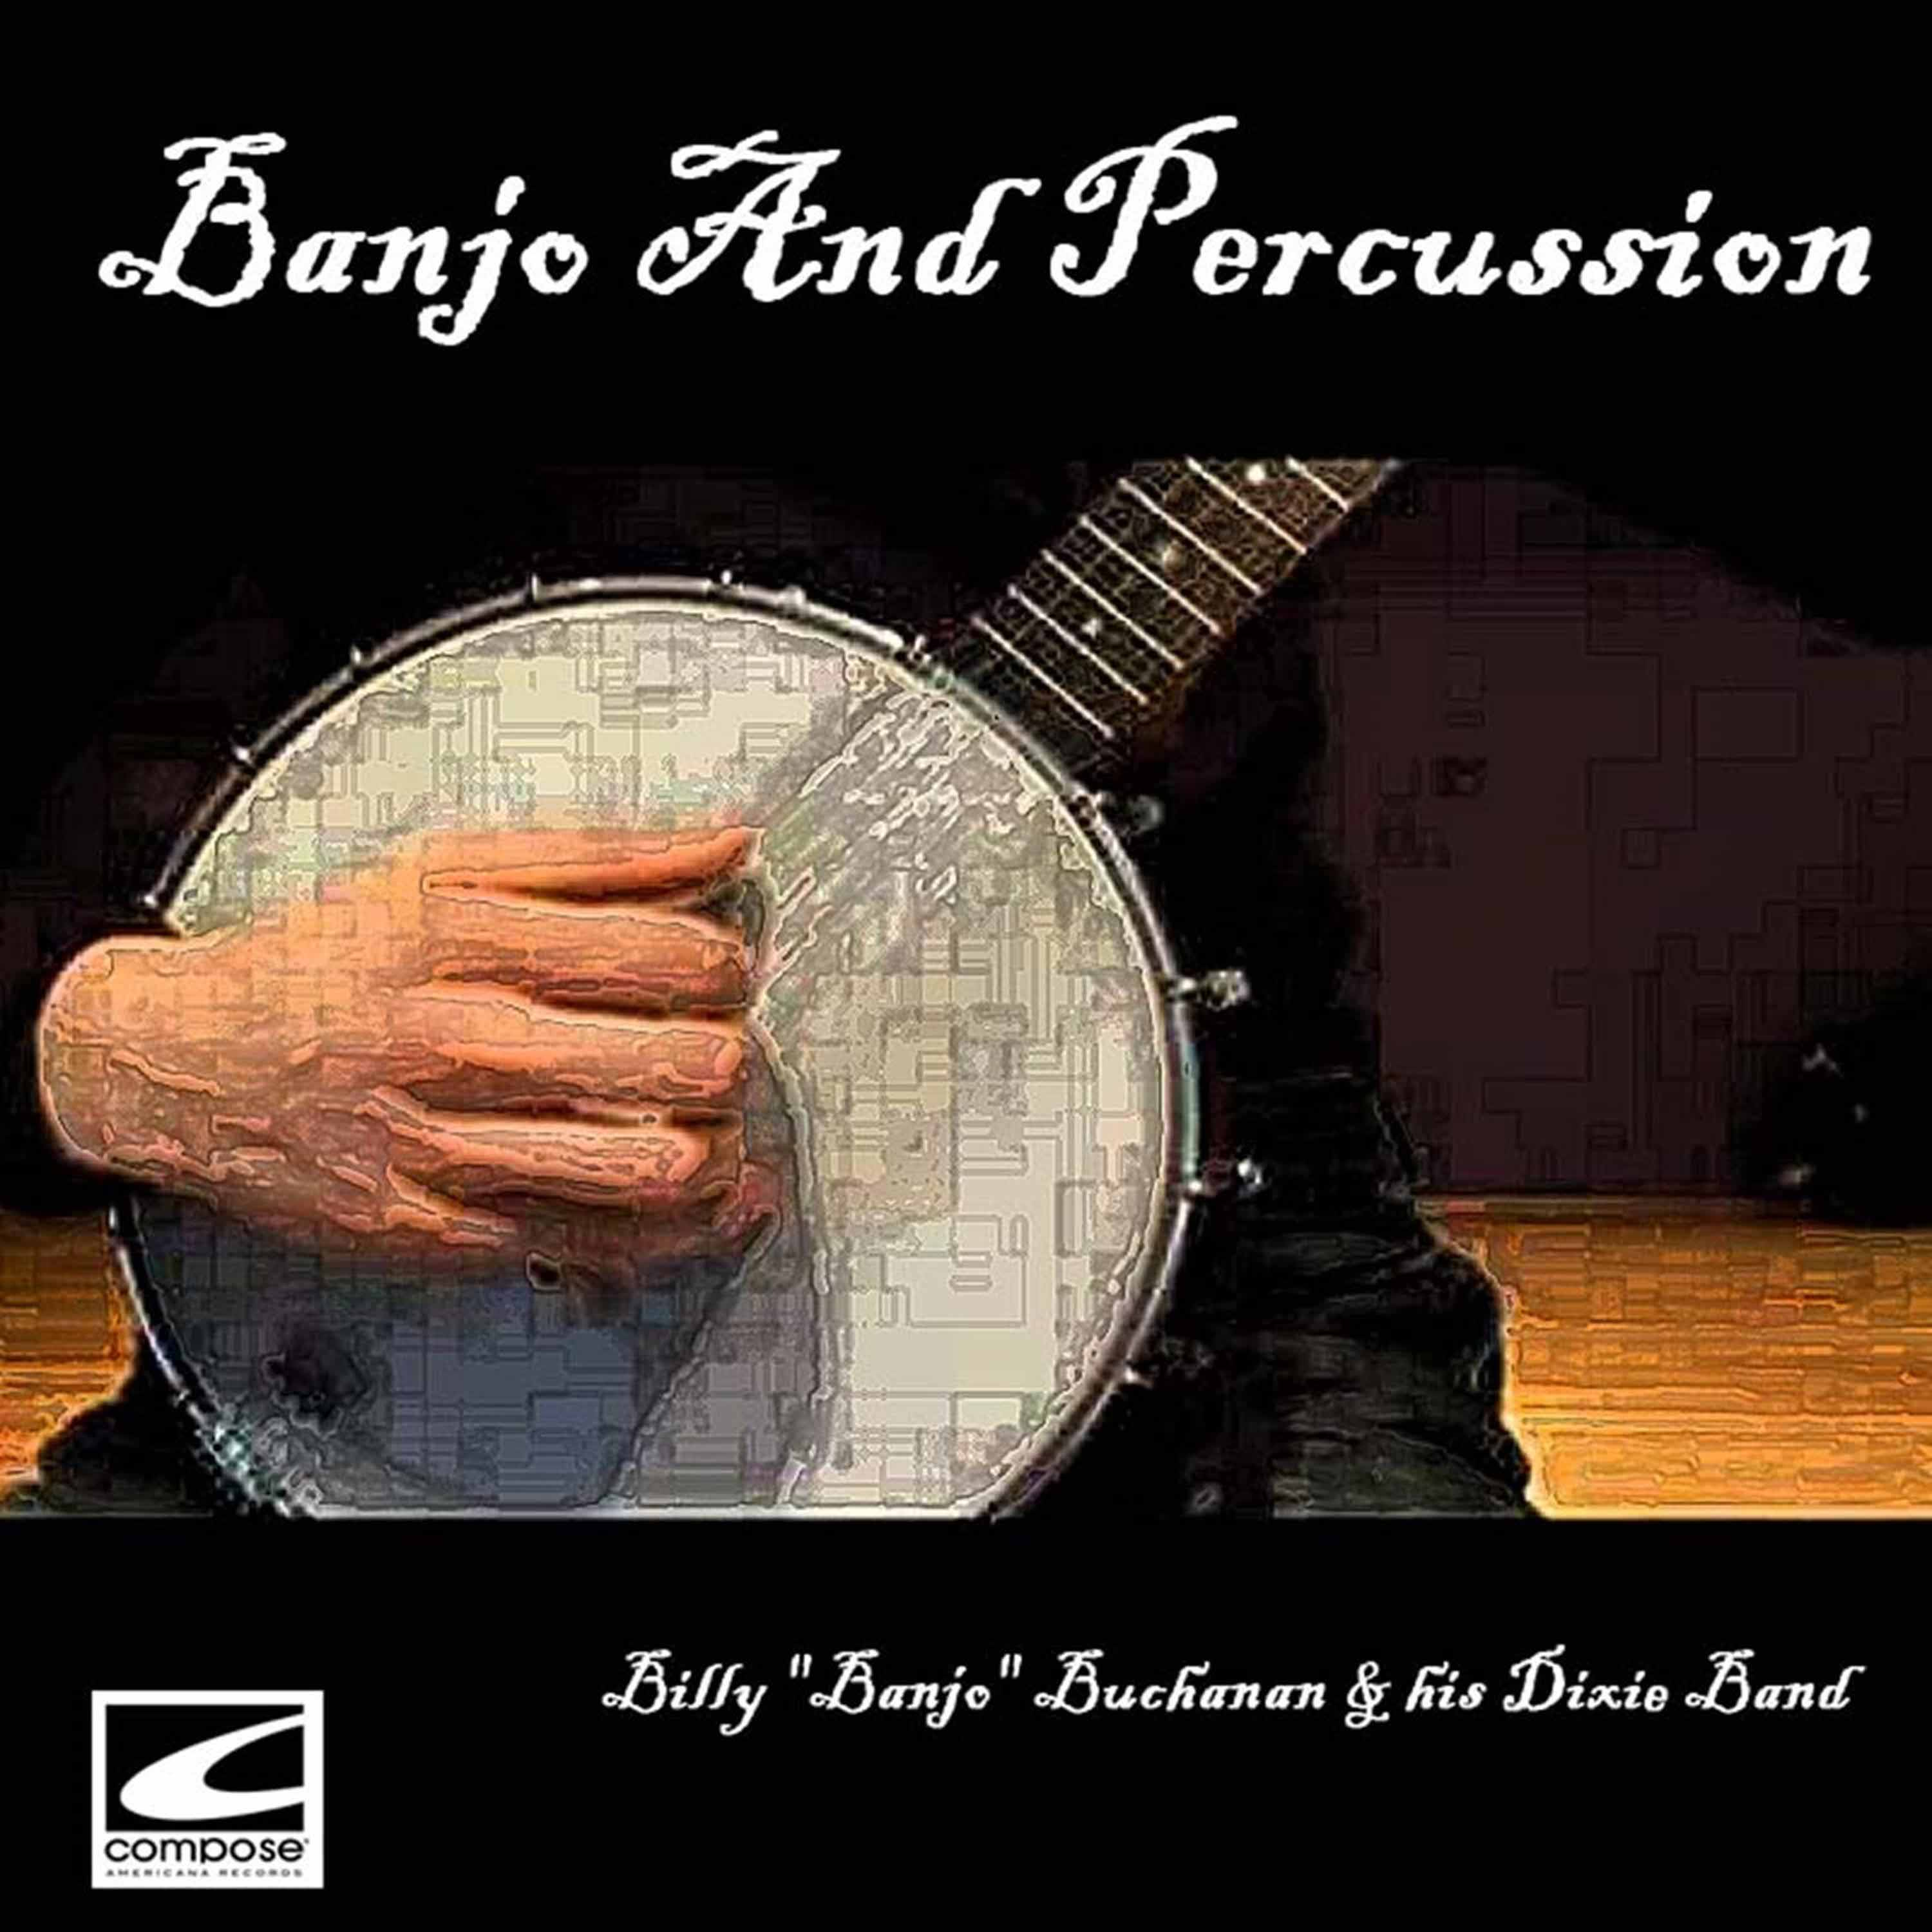 Banjo & Percussion